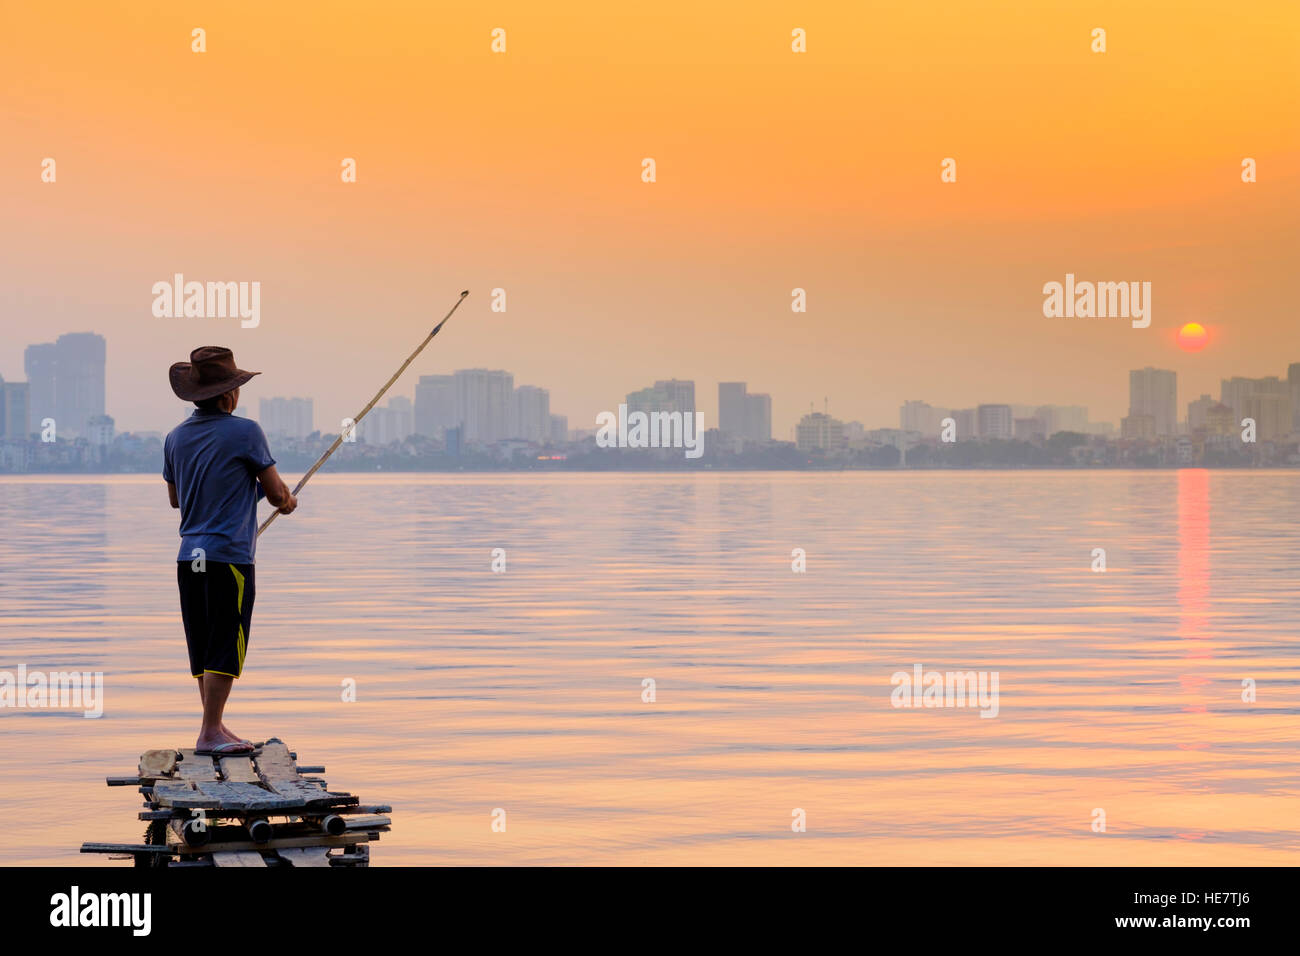 A man fishing on the West Lake in Hanoi, Vietnam - Stock Image